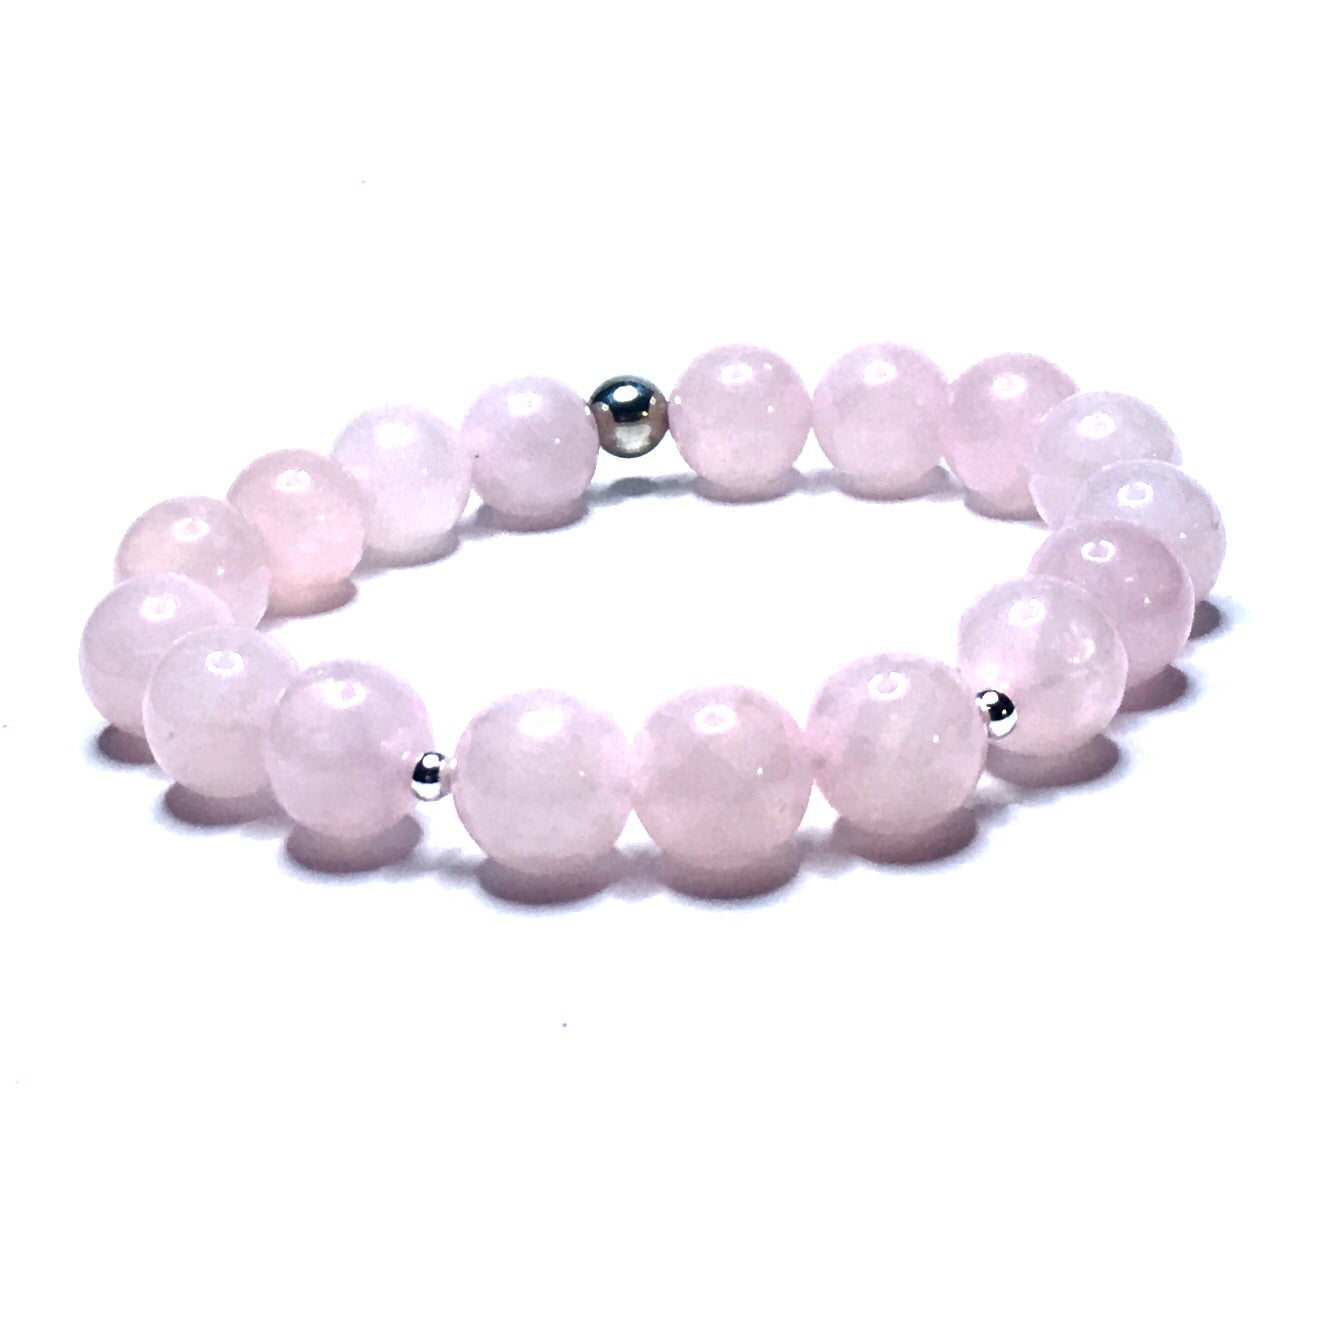 ROSE QUARTZ CRYSTAL BRACELET - SIMPLY SOFIA